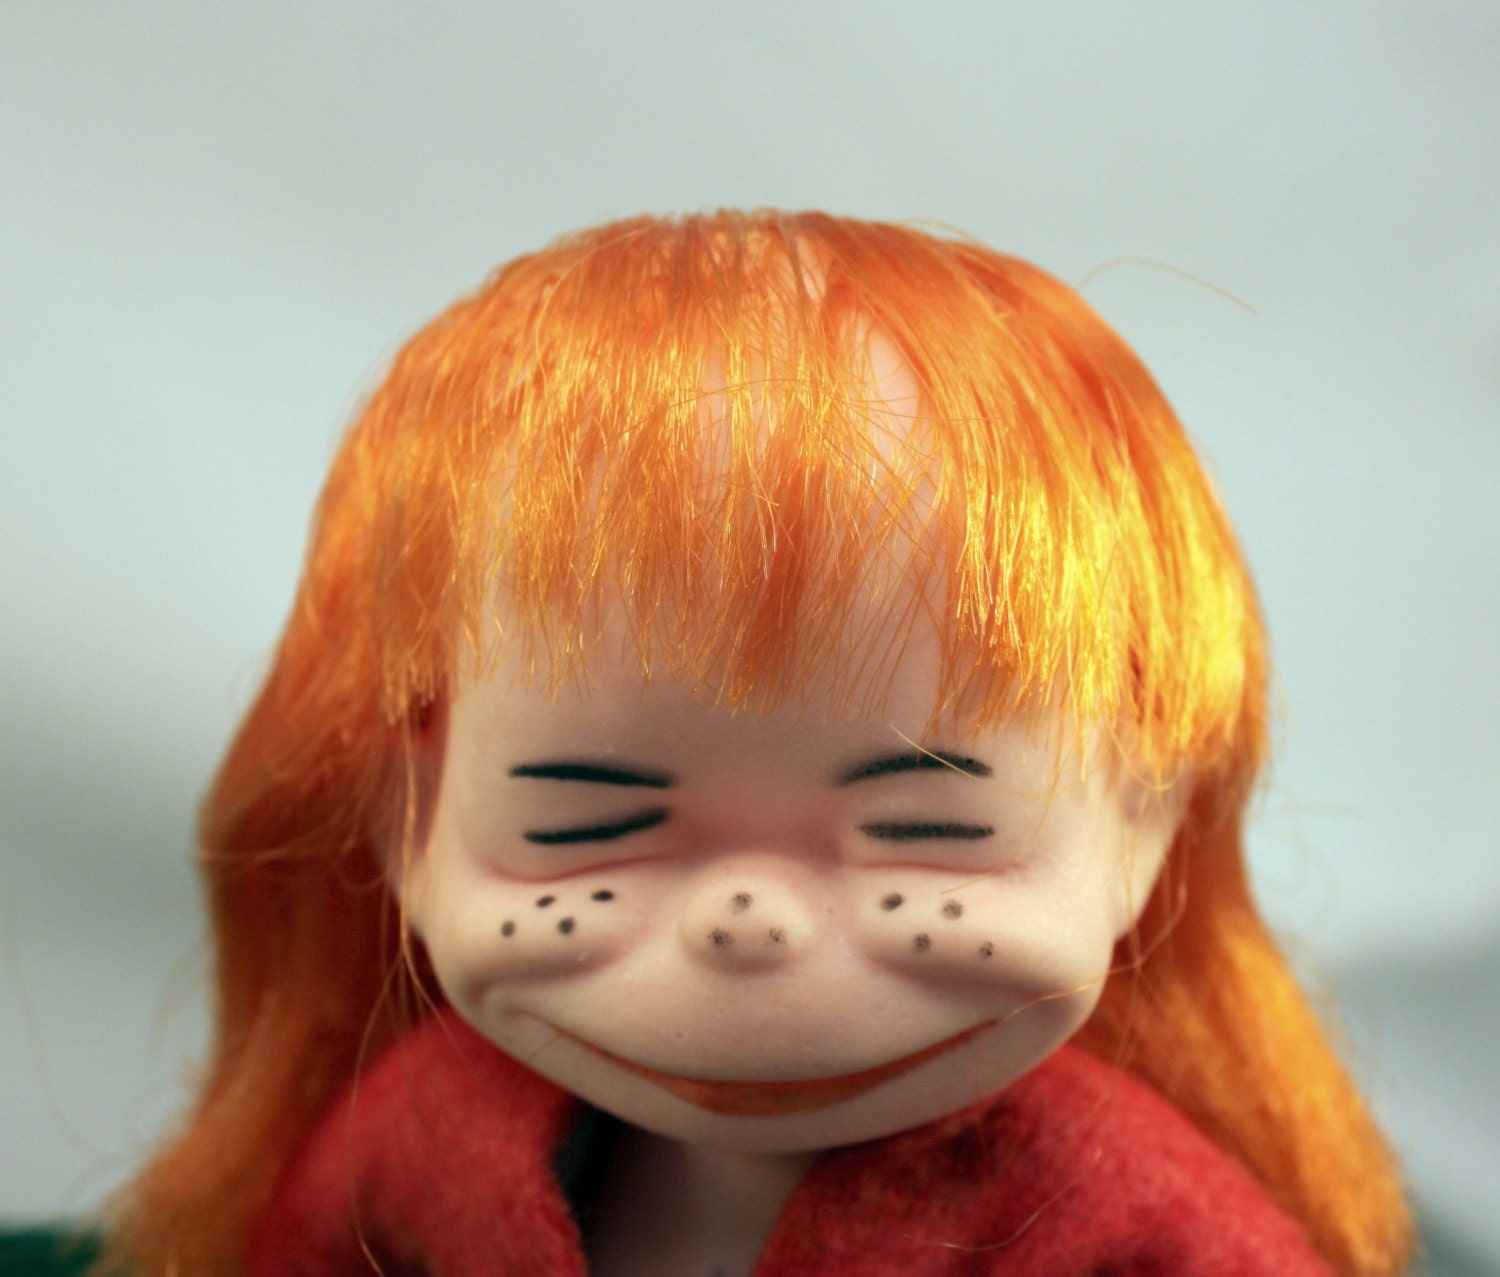 Ugly Brat Doll Funny Freckle Faced Red Hair Collectible